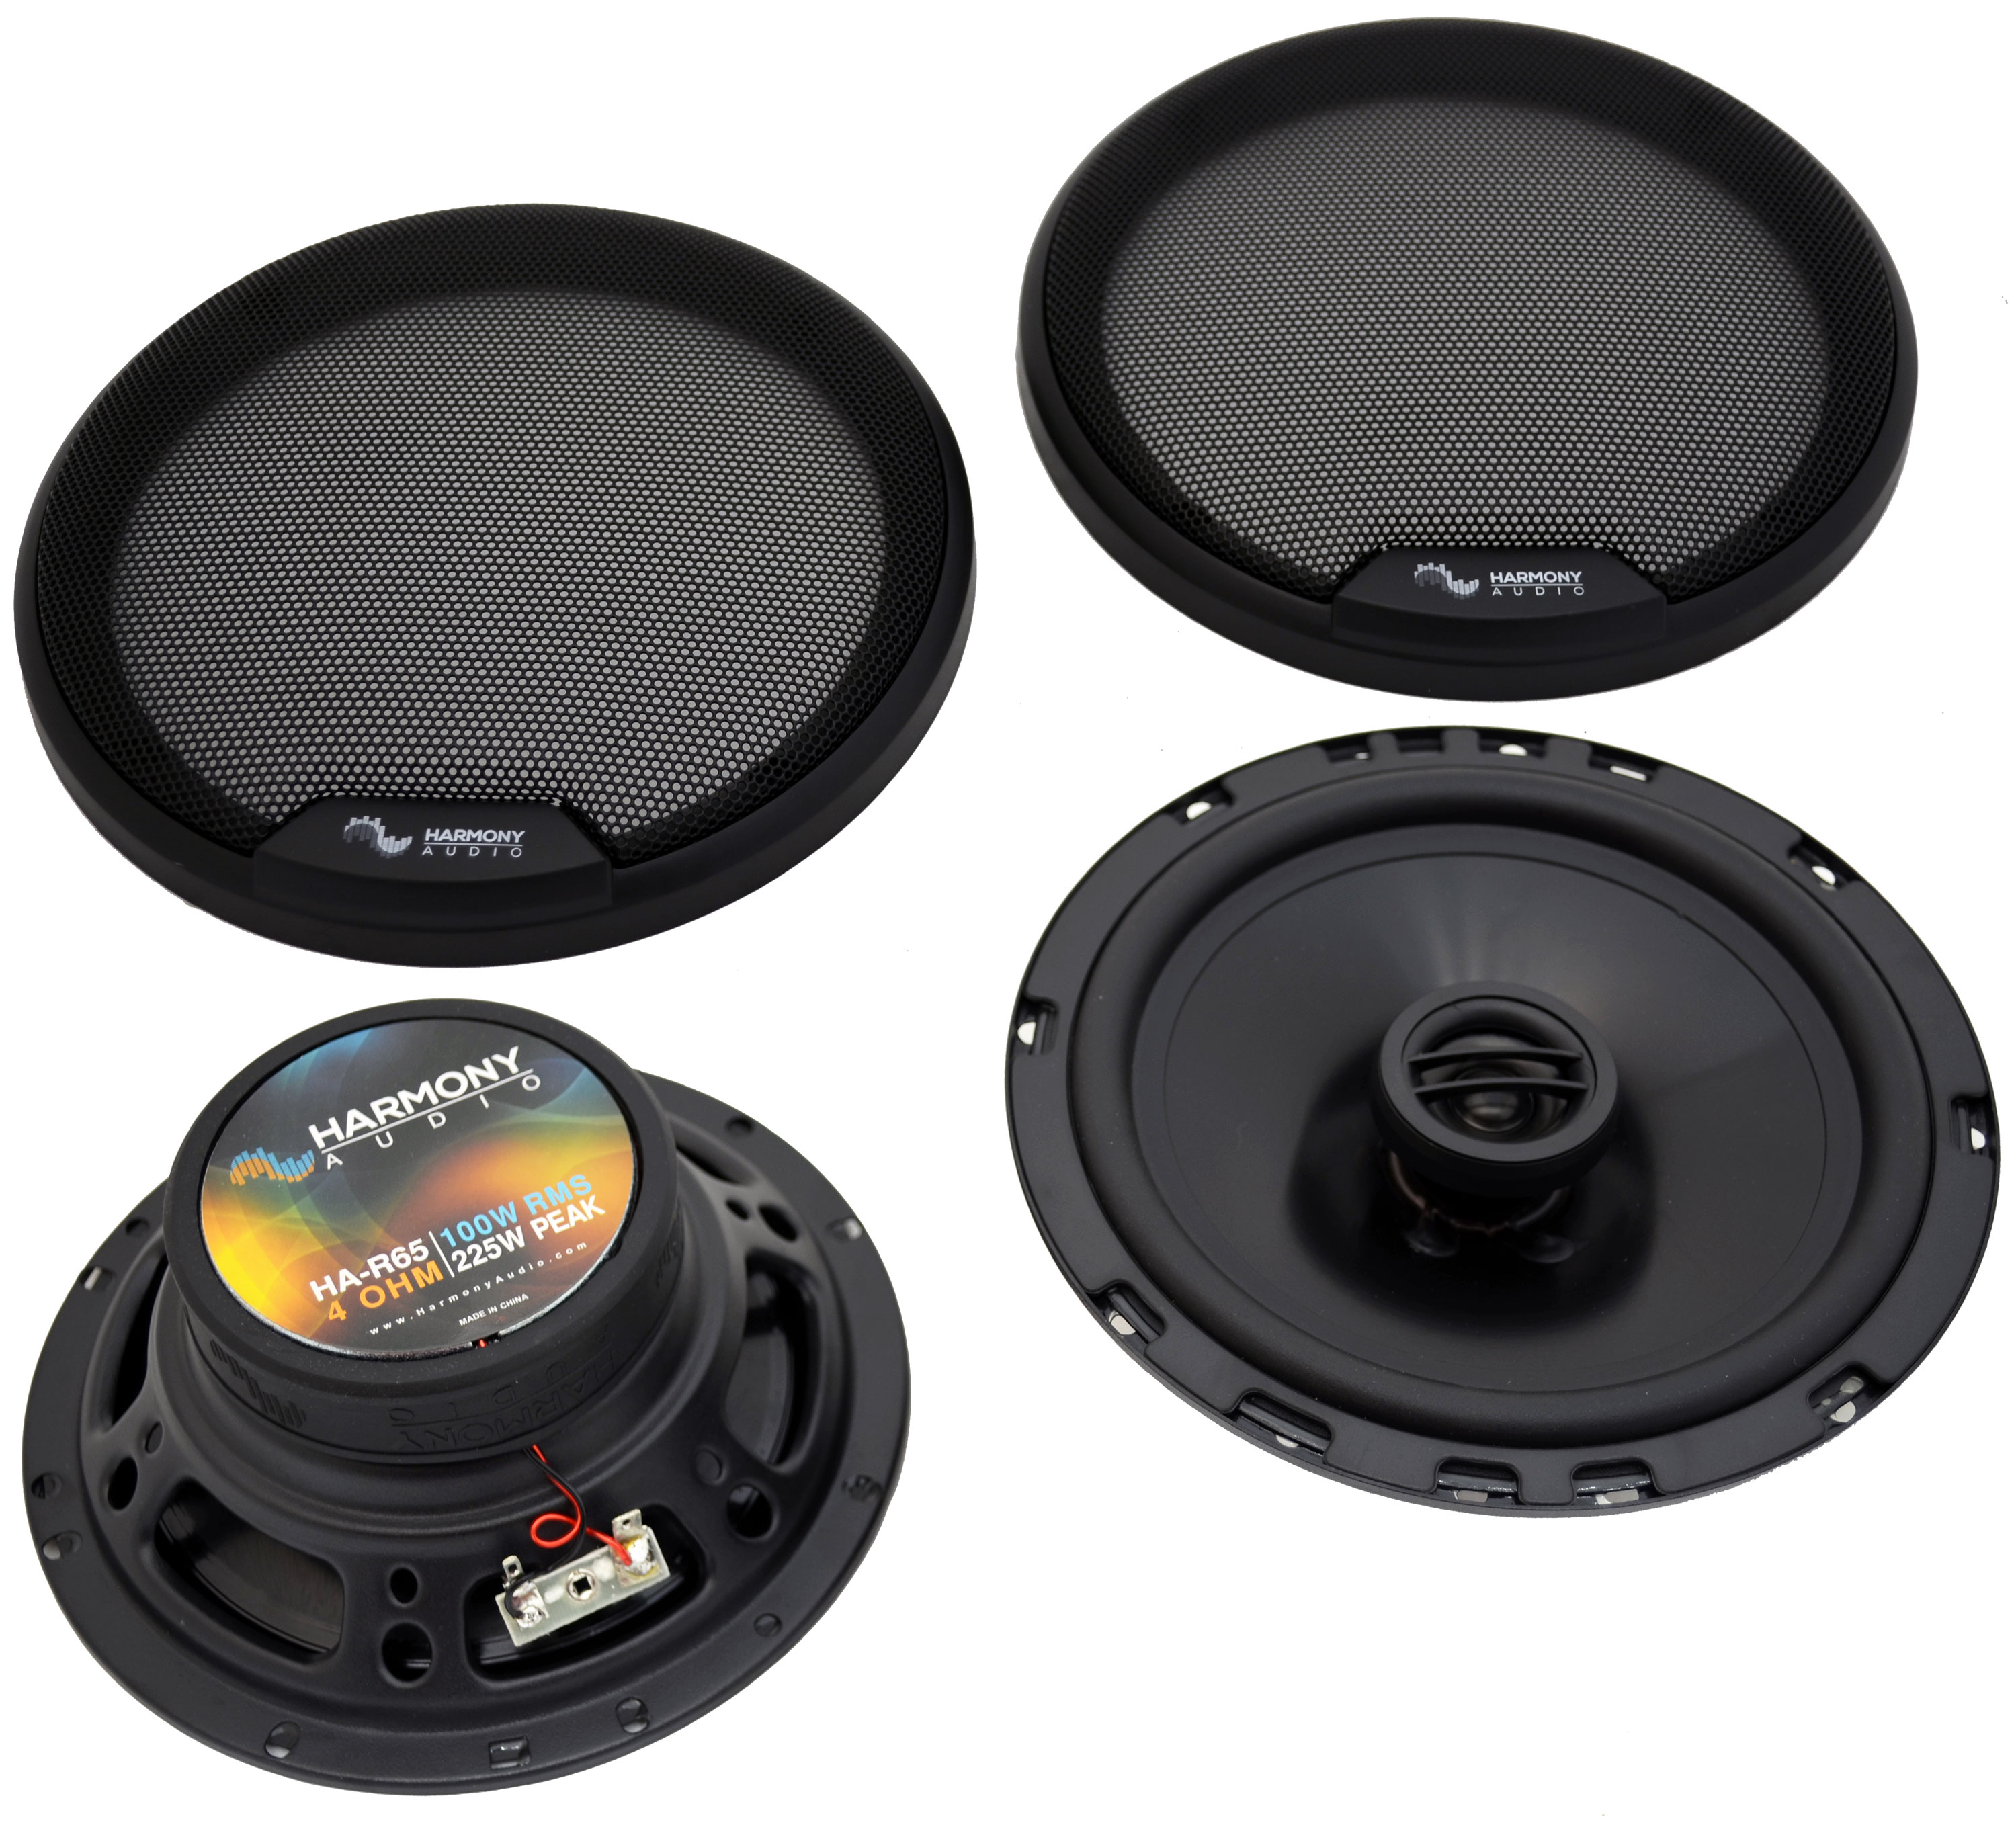 Fits BMW M3 2002-2006 Rear Deck Replacement Speaker Harmony HA-R65 Speakers New